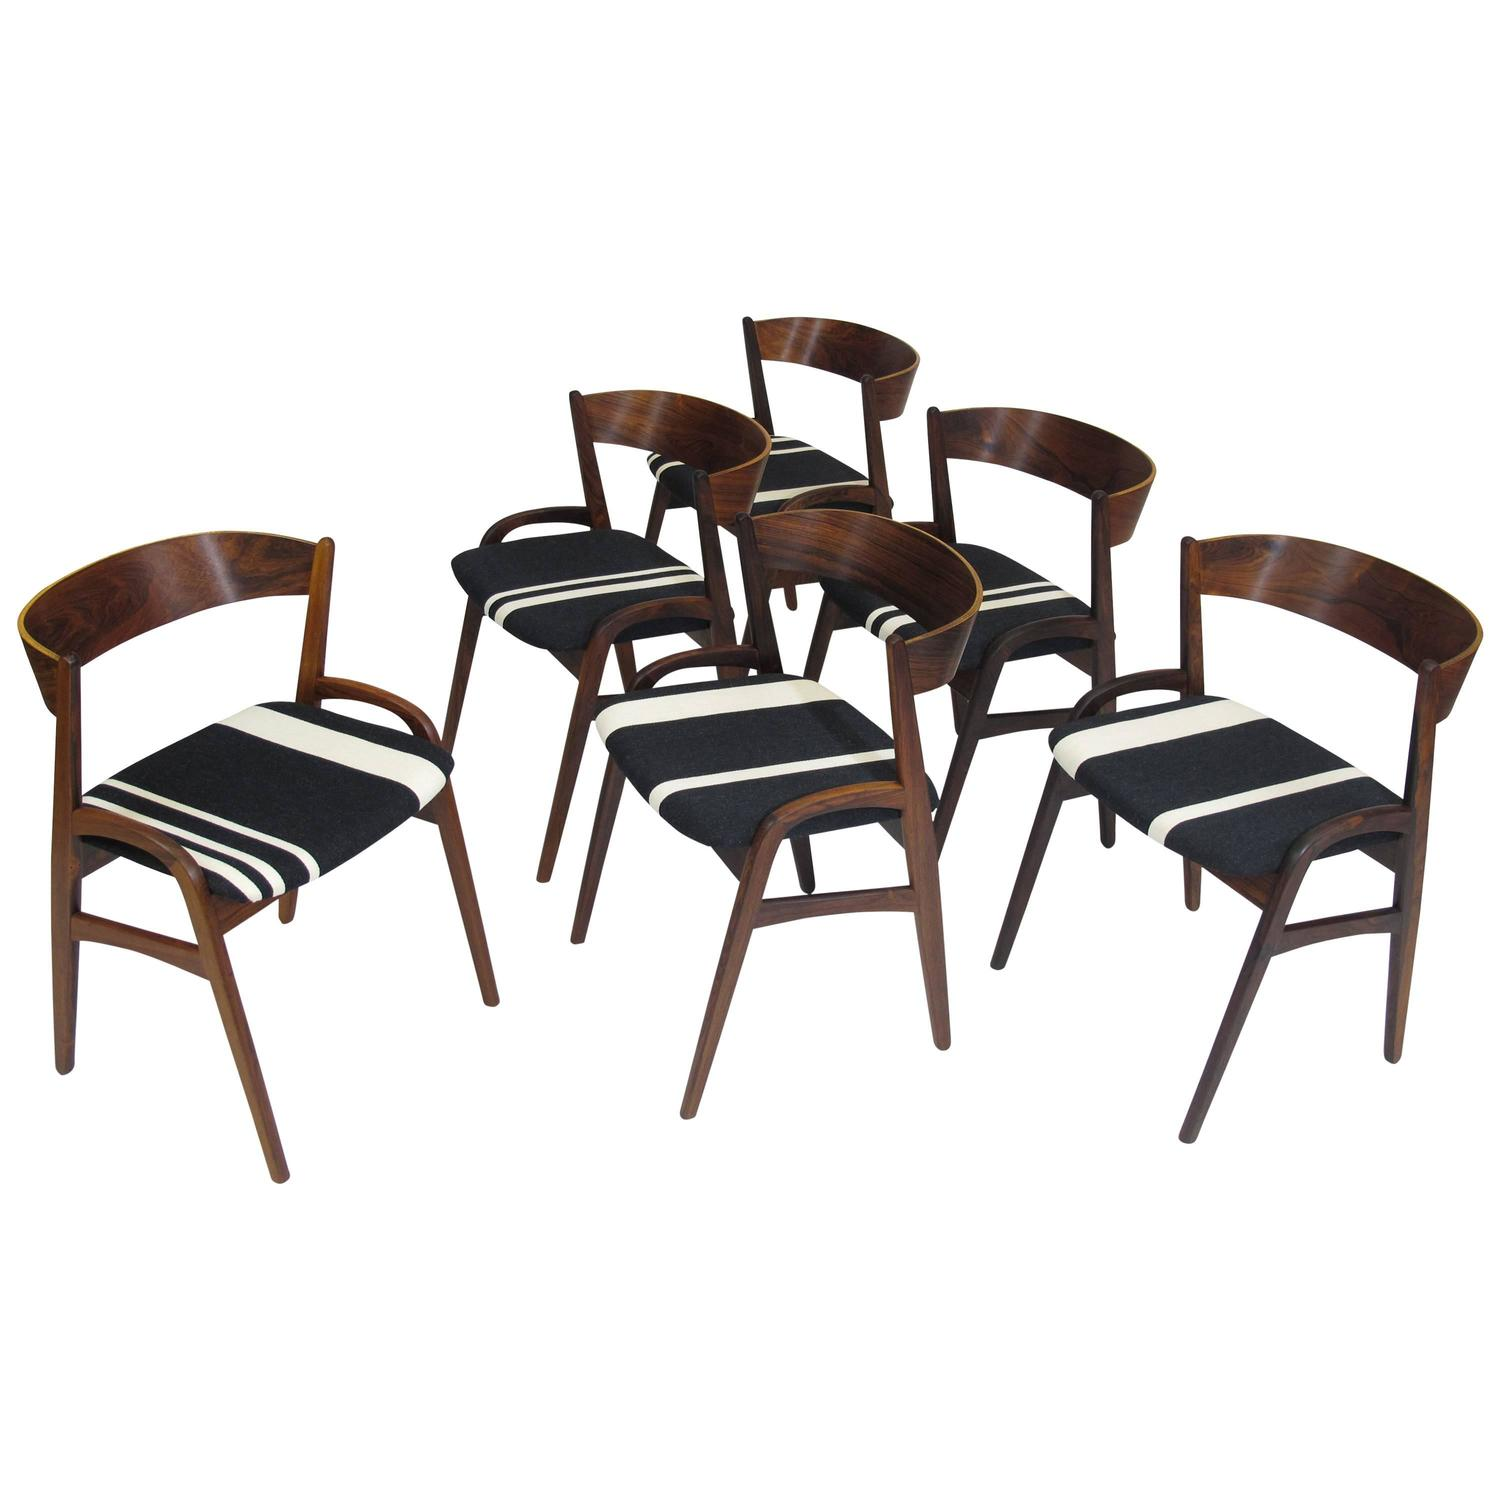 Black And White Dining Chair: Six Rosewood Danish Dining Chairs In Black/White Striped